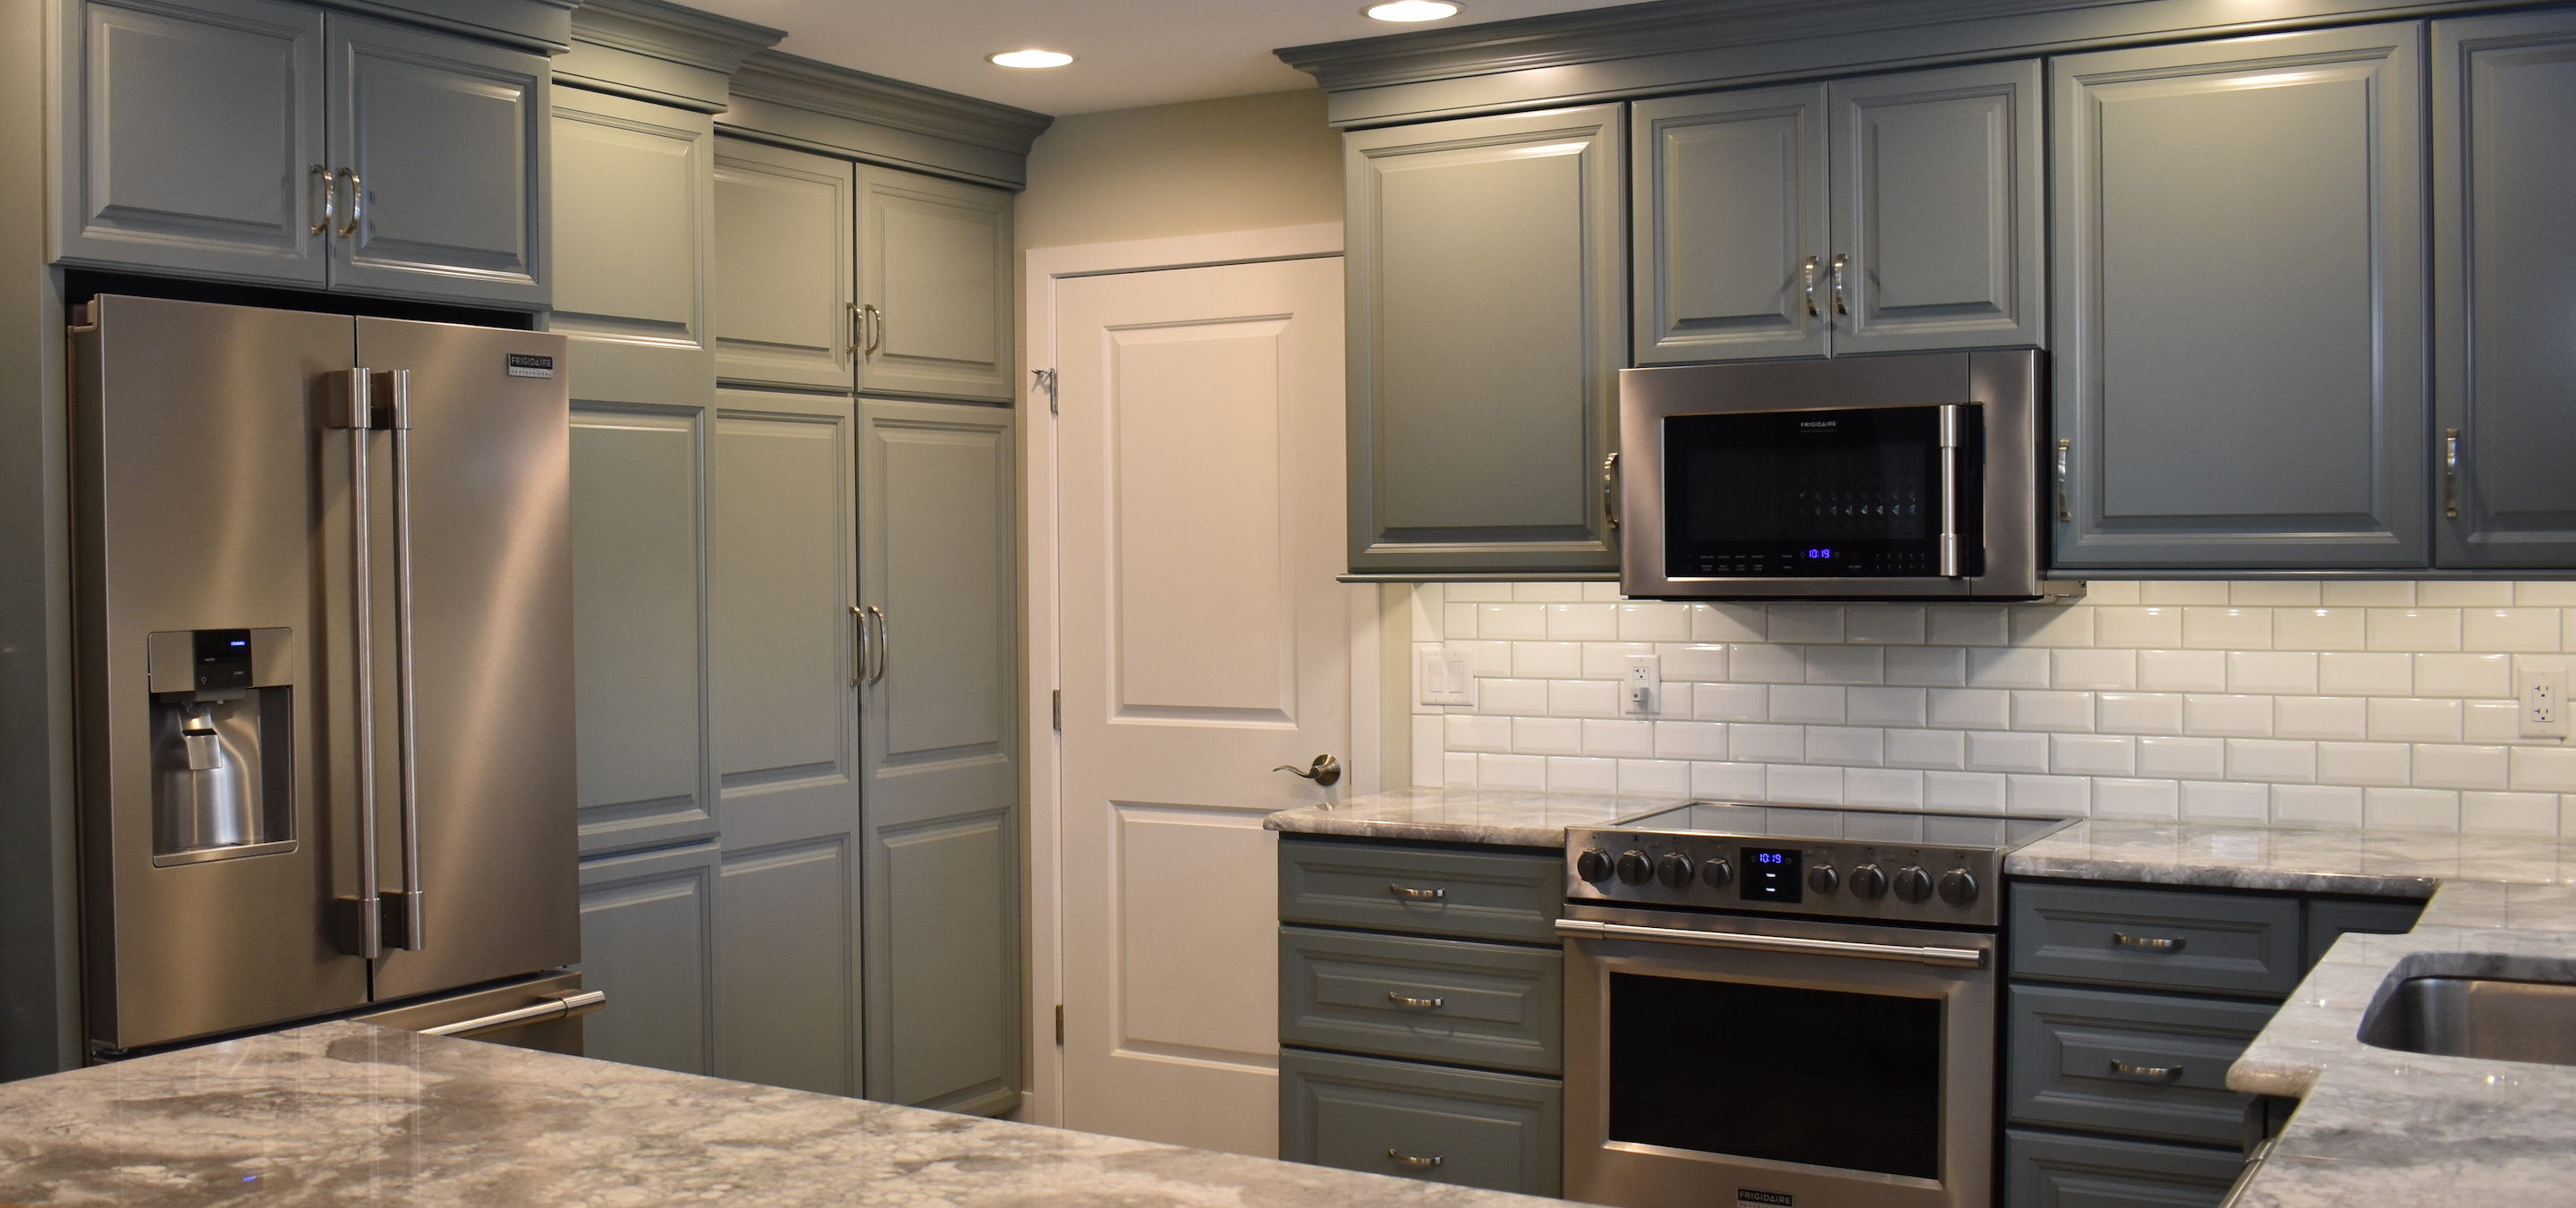 Rm kitchens inc custom cabinet makers installers in for Bathroom cabinets yelp